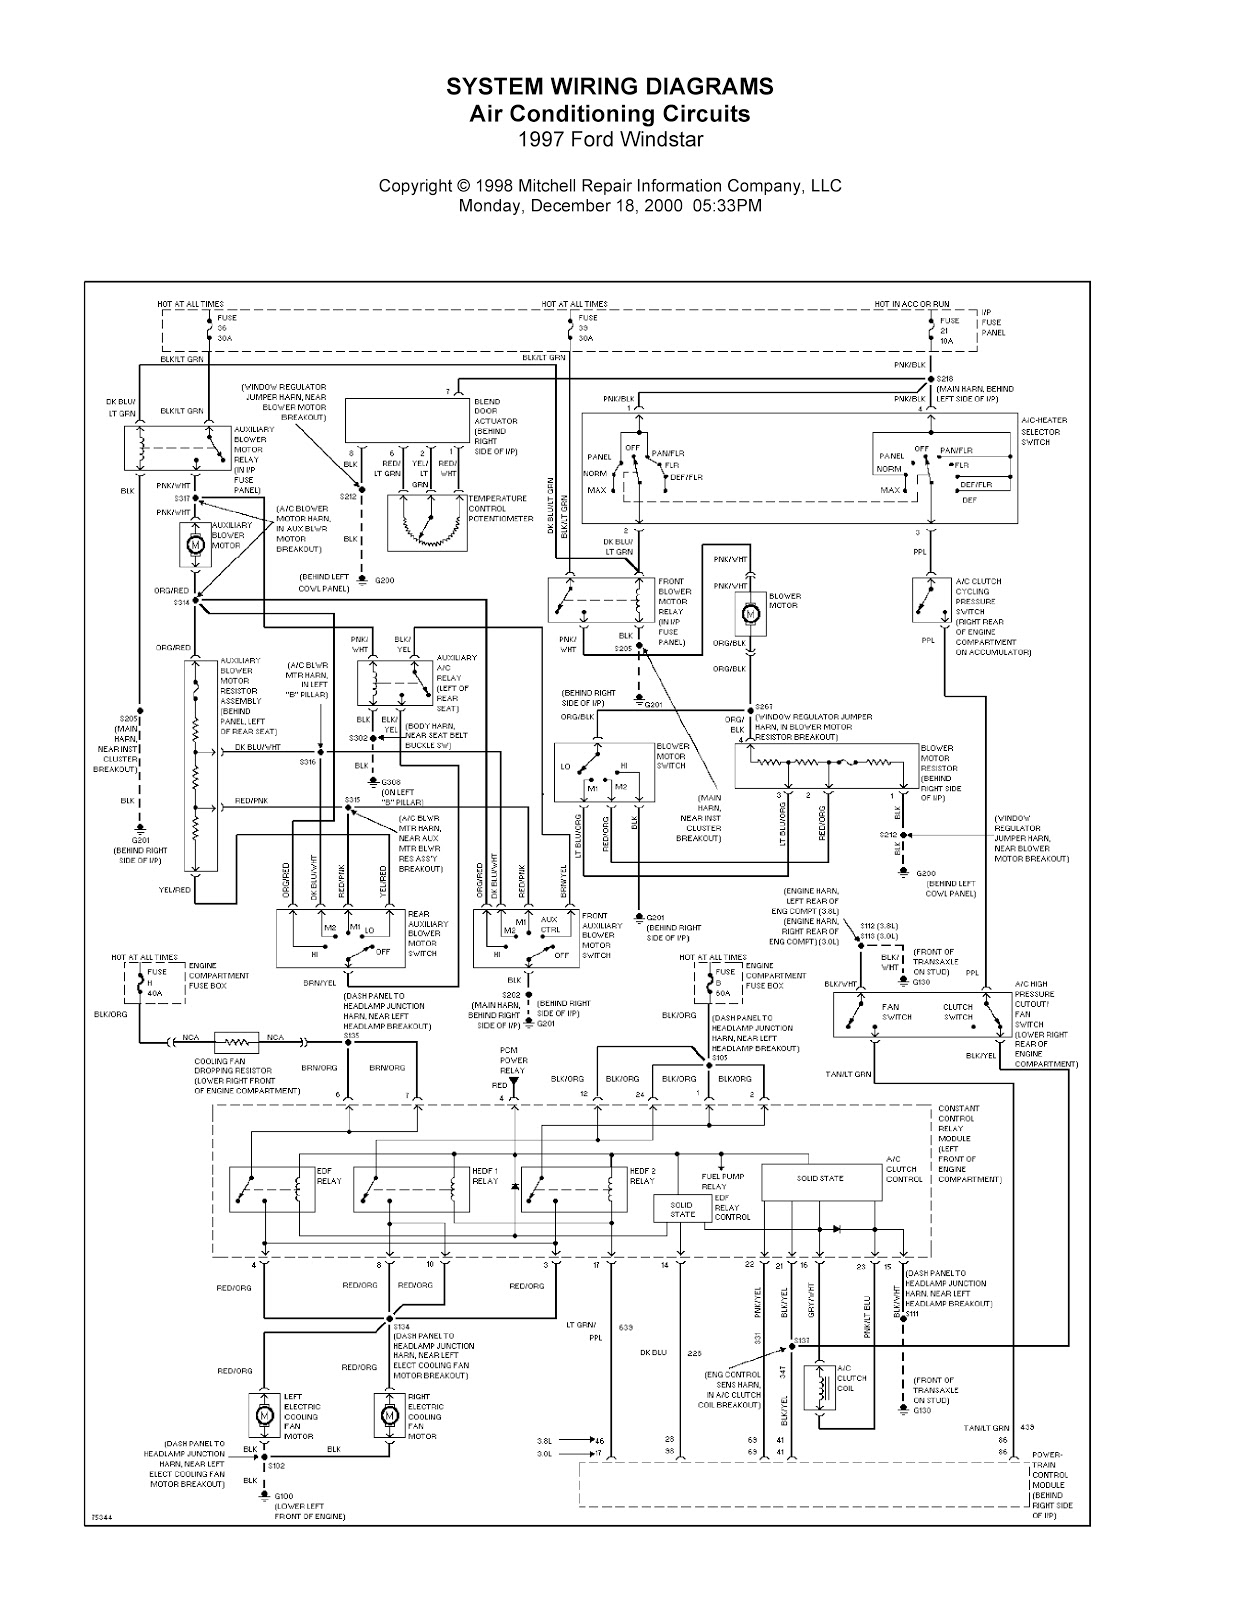 system wiring diagram 1999 ford 1997 ford windstar complete system wiring diagrams wiring we provide you the clear and readable images